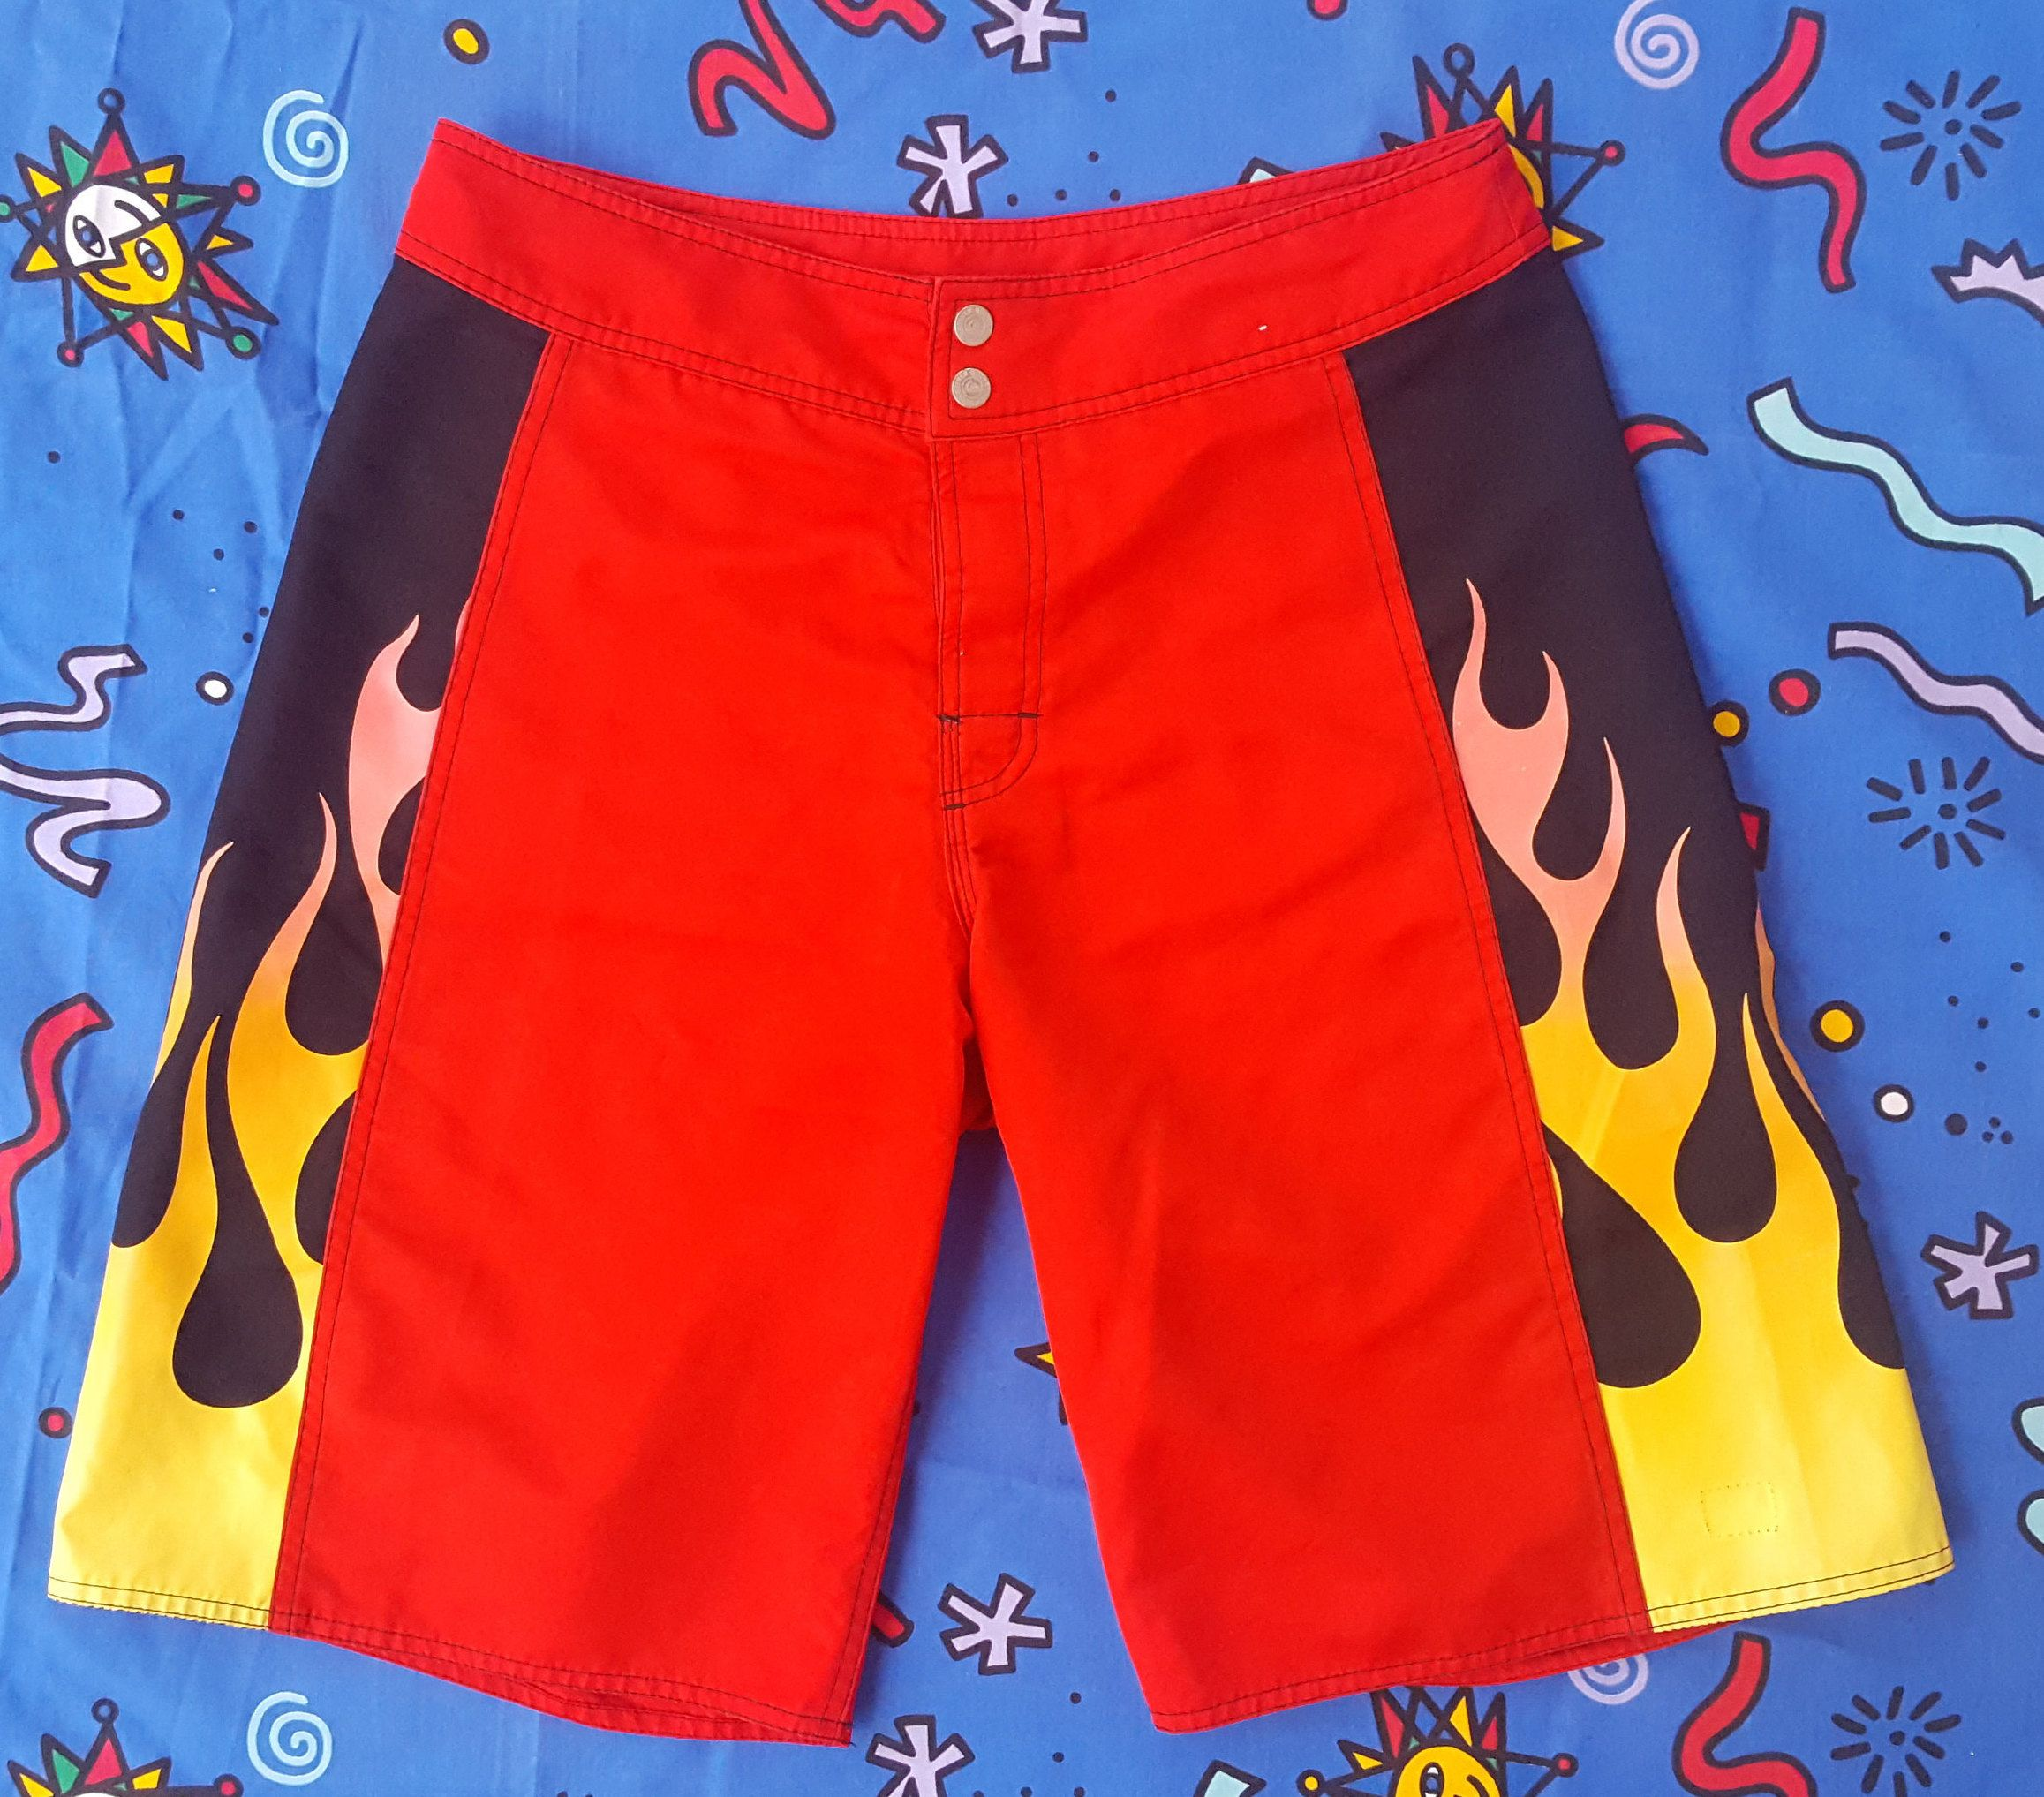 44d910e9c4a 90s Quiksilver Flame Shorts, Flames, Vintage Swim Trunks, Rusty, Surfwear,  Surf Brand, Fire, Street, Streetwear, Gangsta, OG, Skate, Grunge by  NEONPOINT on ...